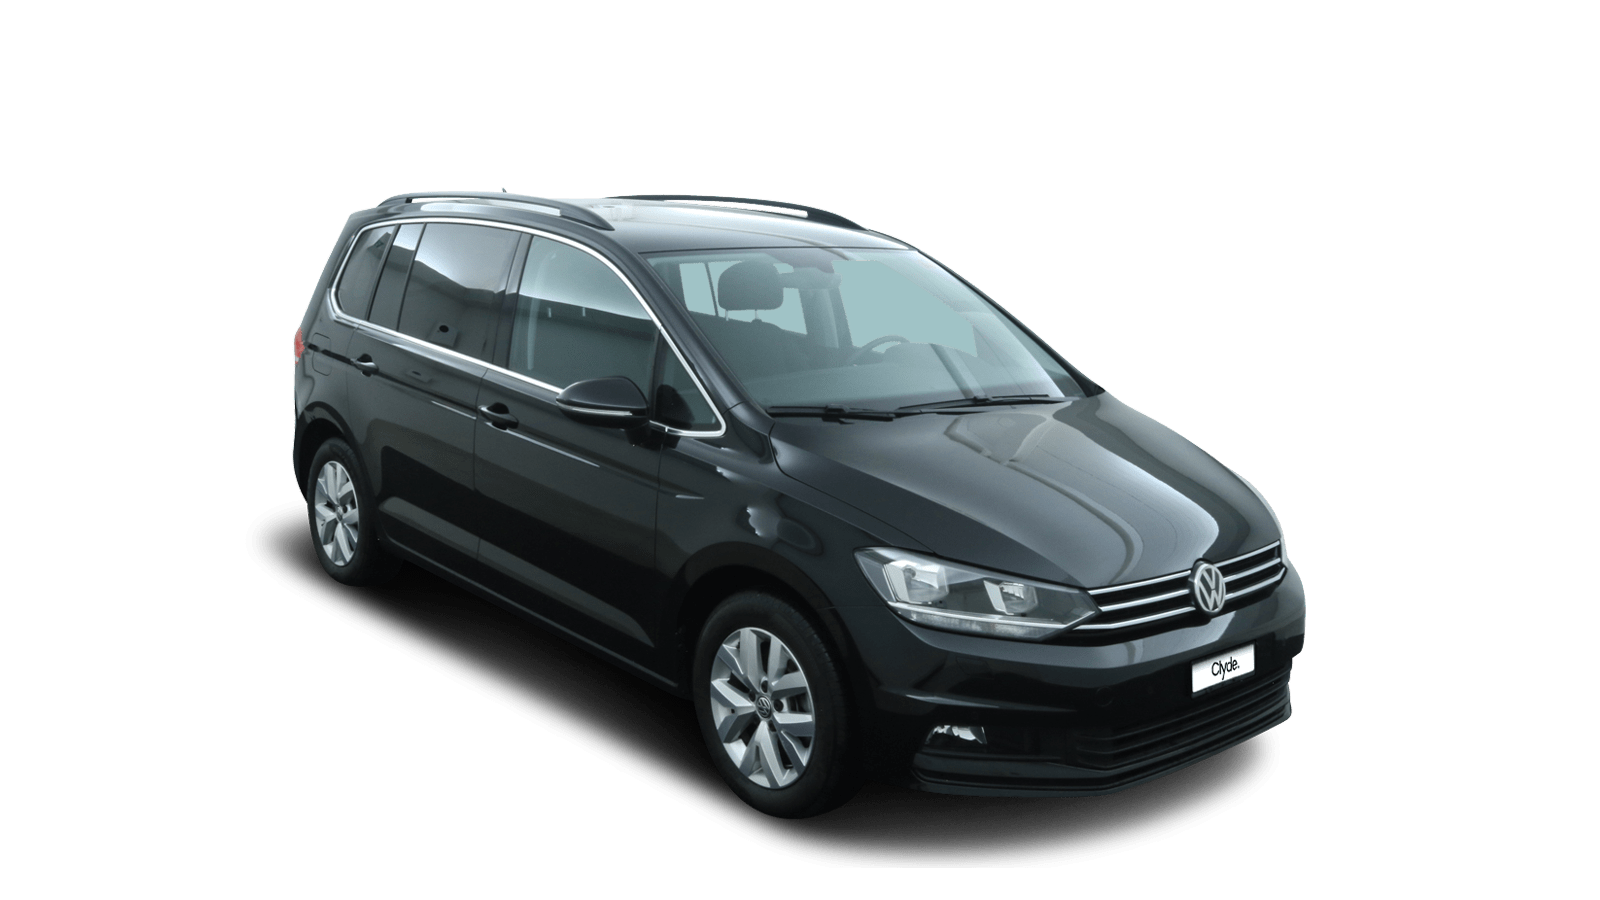 VW Touran Black front - Clyde car subscription